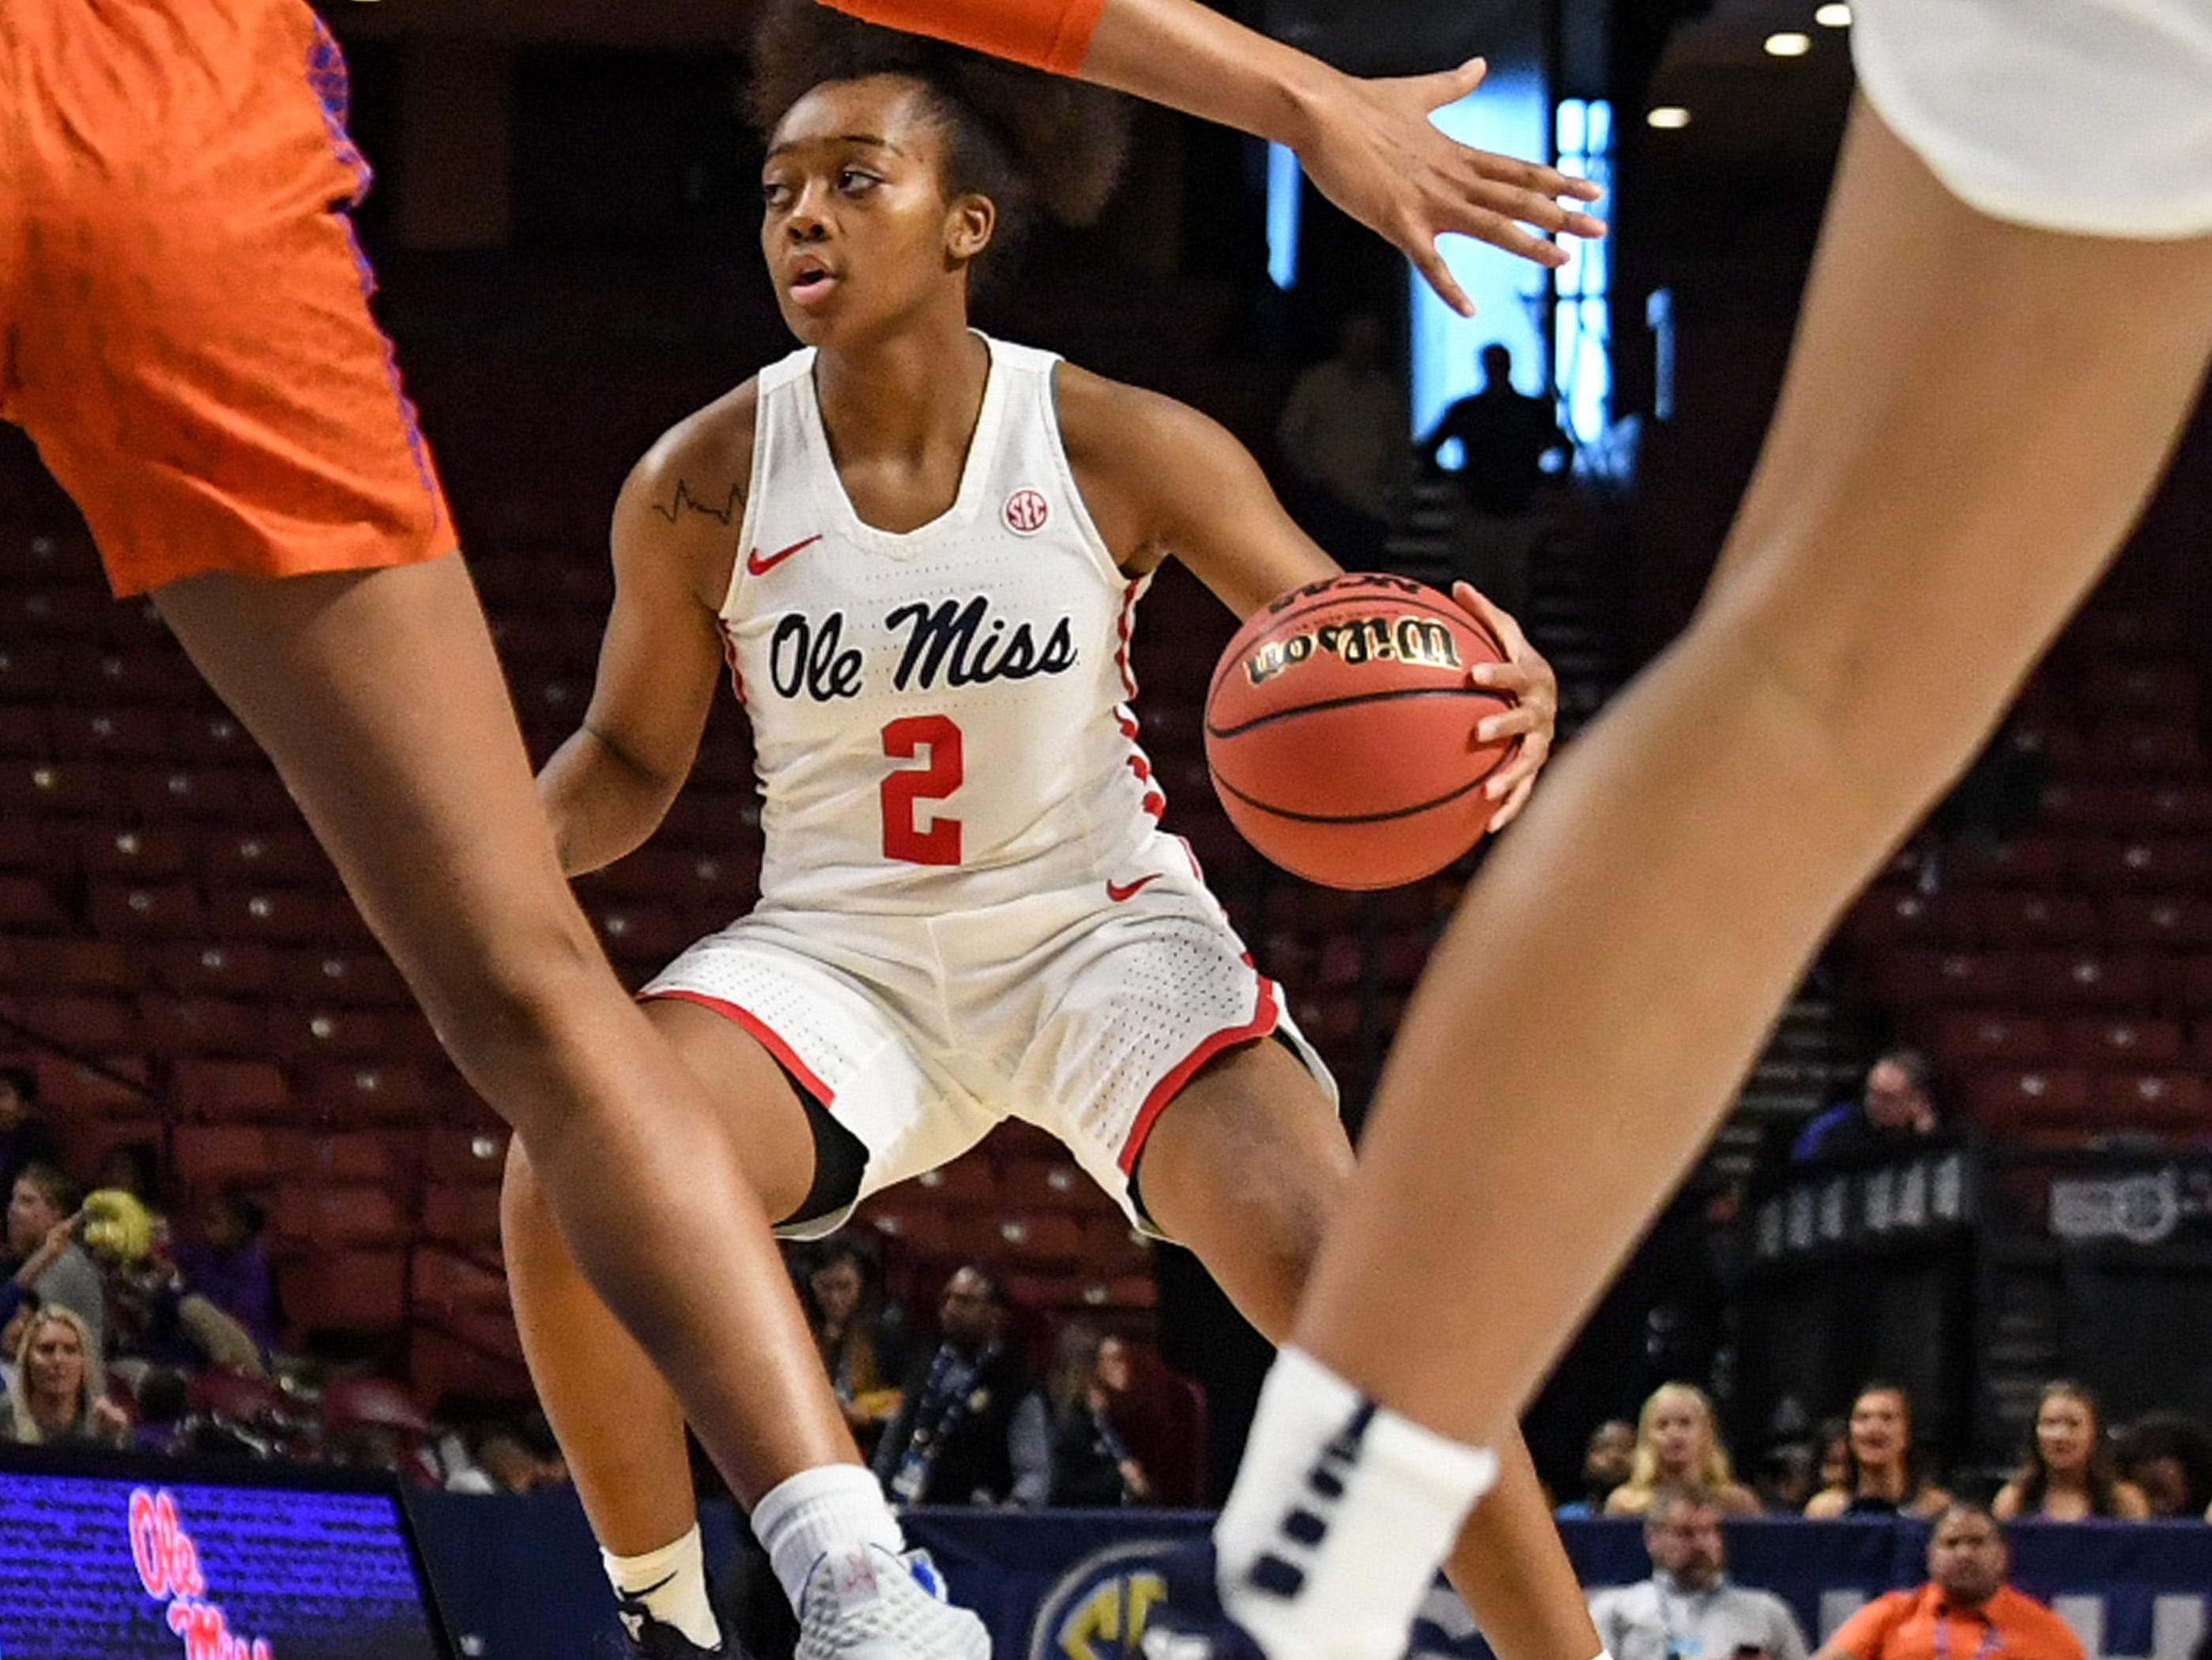 Ole Miss freshman Mimi Reid(2) during the fourth quarter of the Southeastern Conference Women's Tournament game at Bon Secour Wellness Arena in Greenville Wednesday, March 6, 2019.